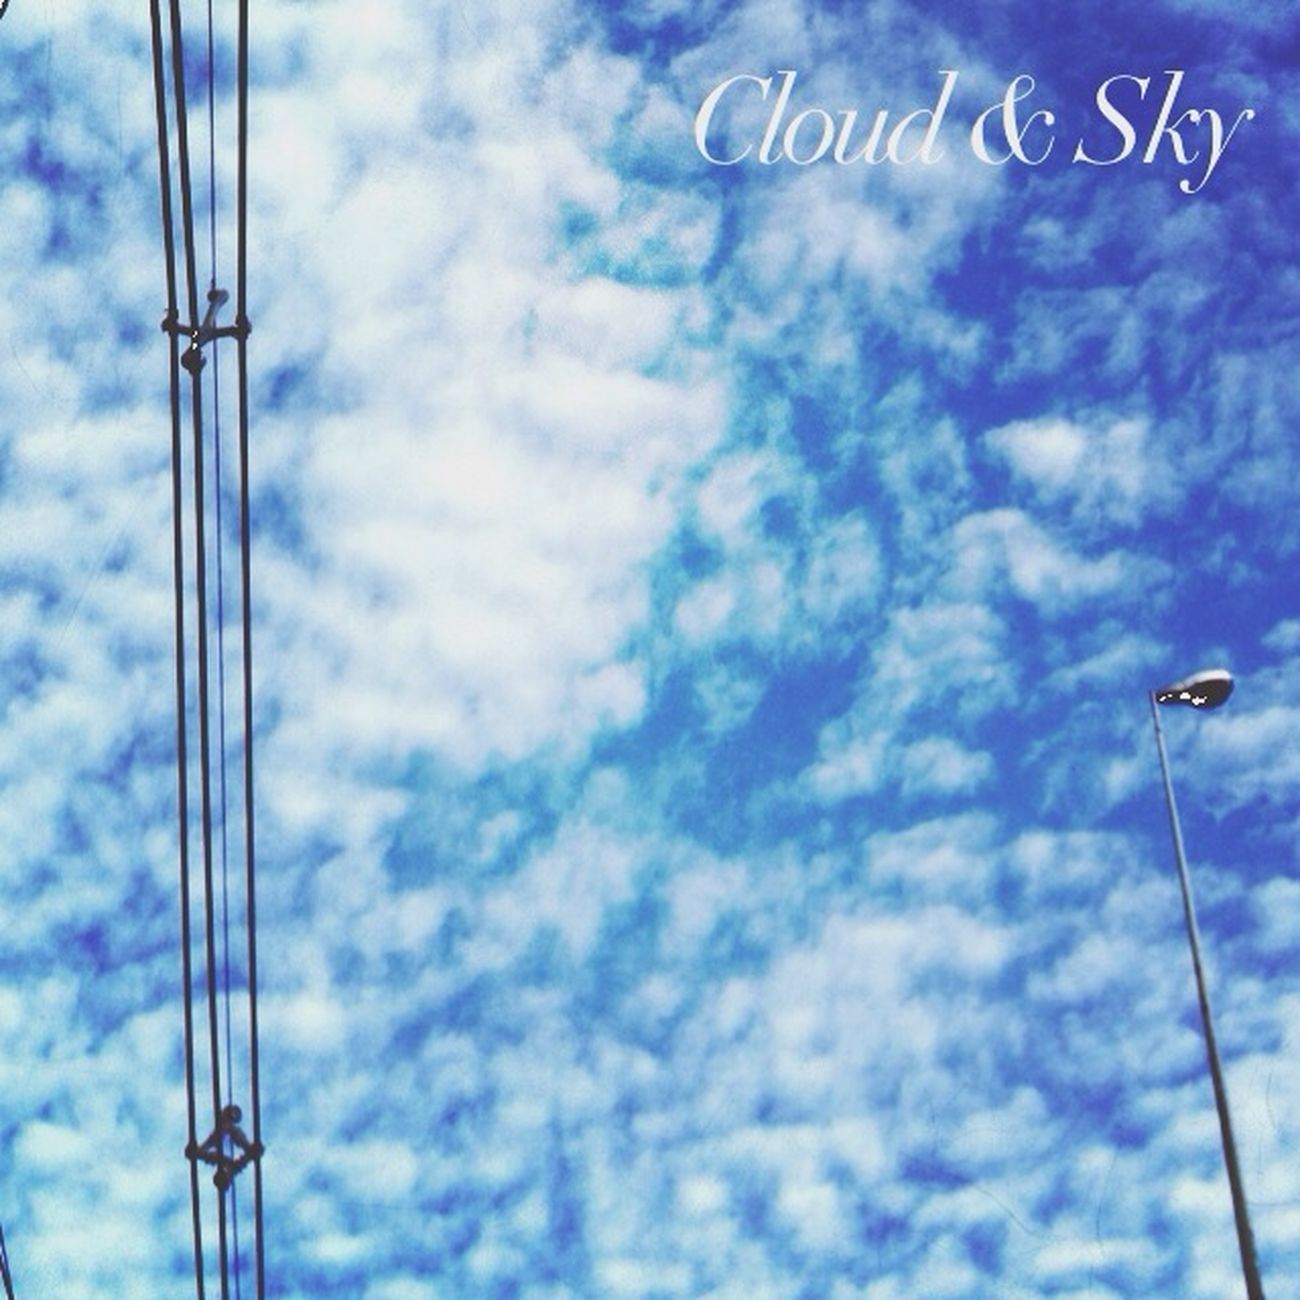 cloud & sky thailand :) Sky Thailand Poppula Photos Clouds